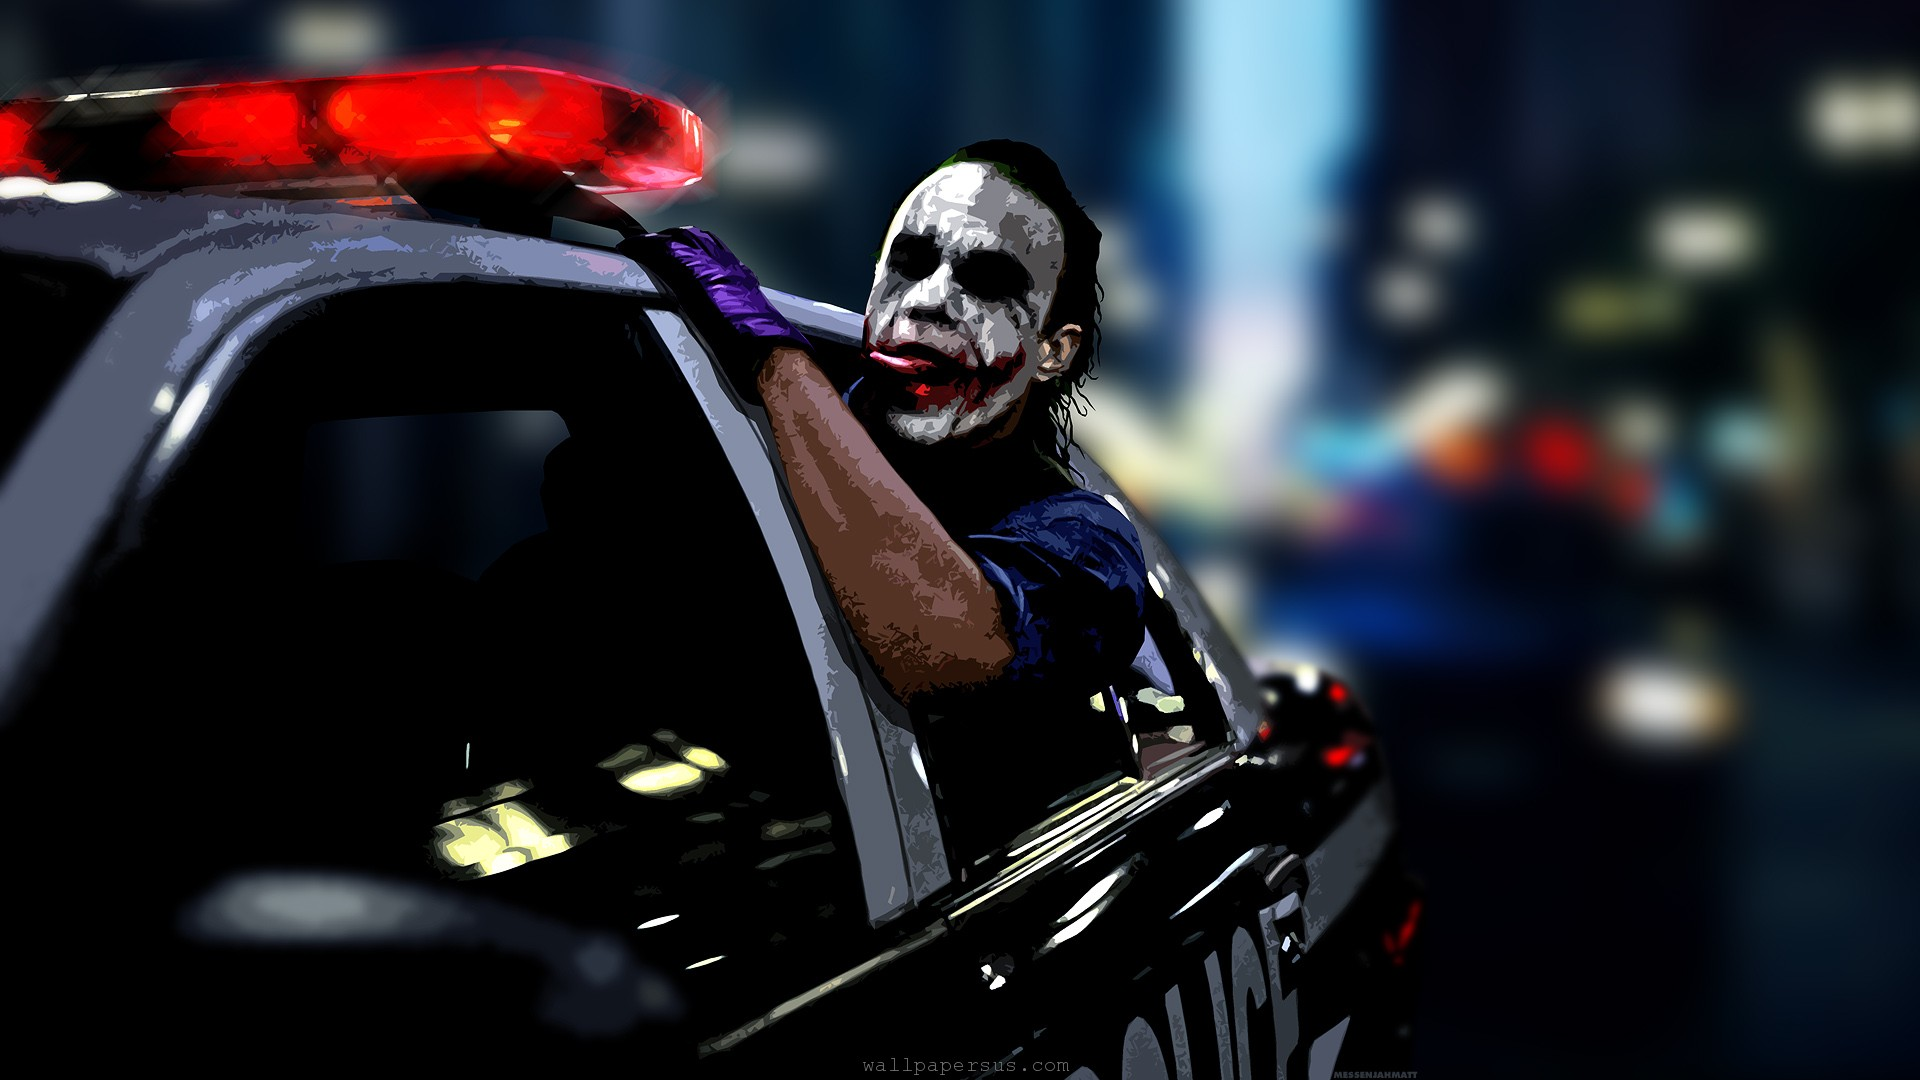 dark-knight-joker-police-smile-art-1920x1080-wallpaper-wpc90010310